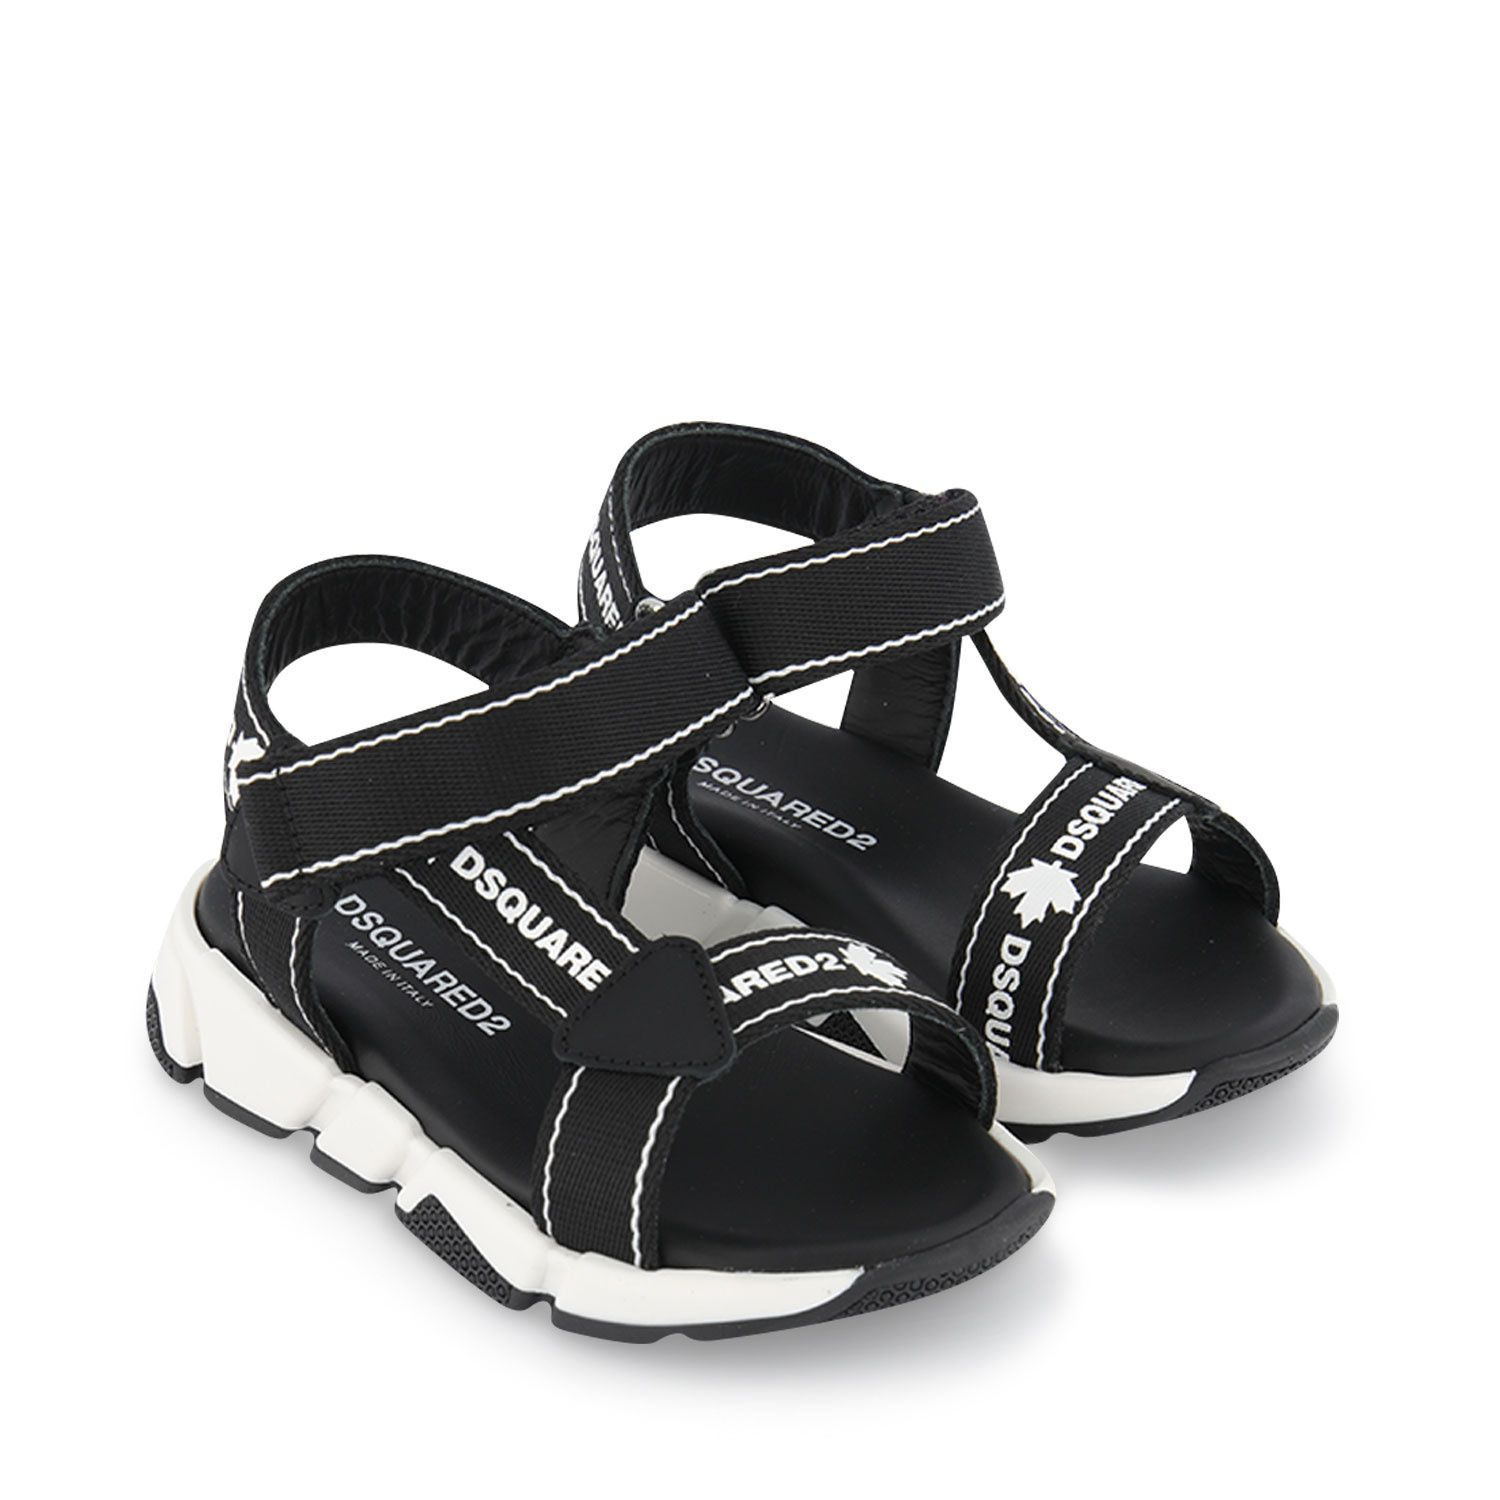 Picture of Dsquared2 66967 kids sandals black